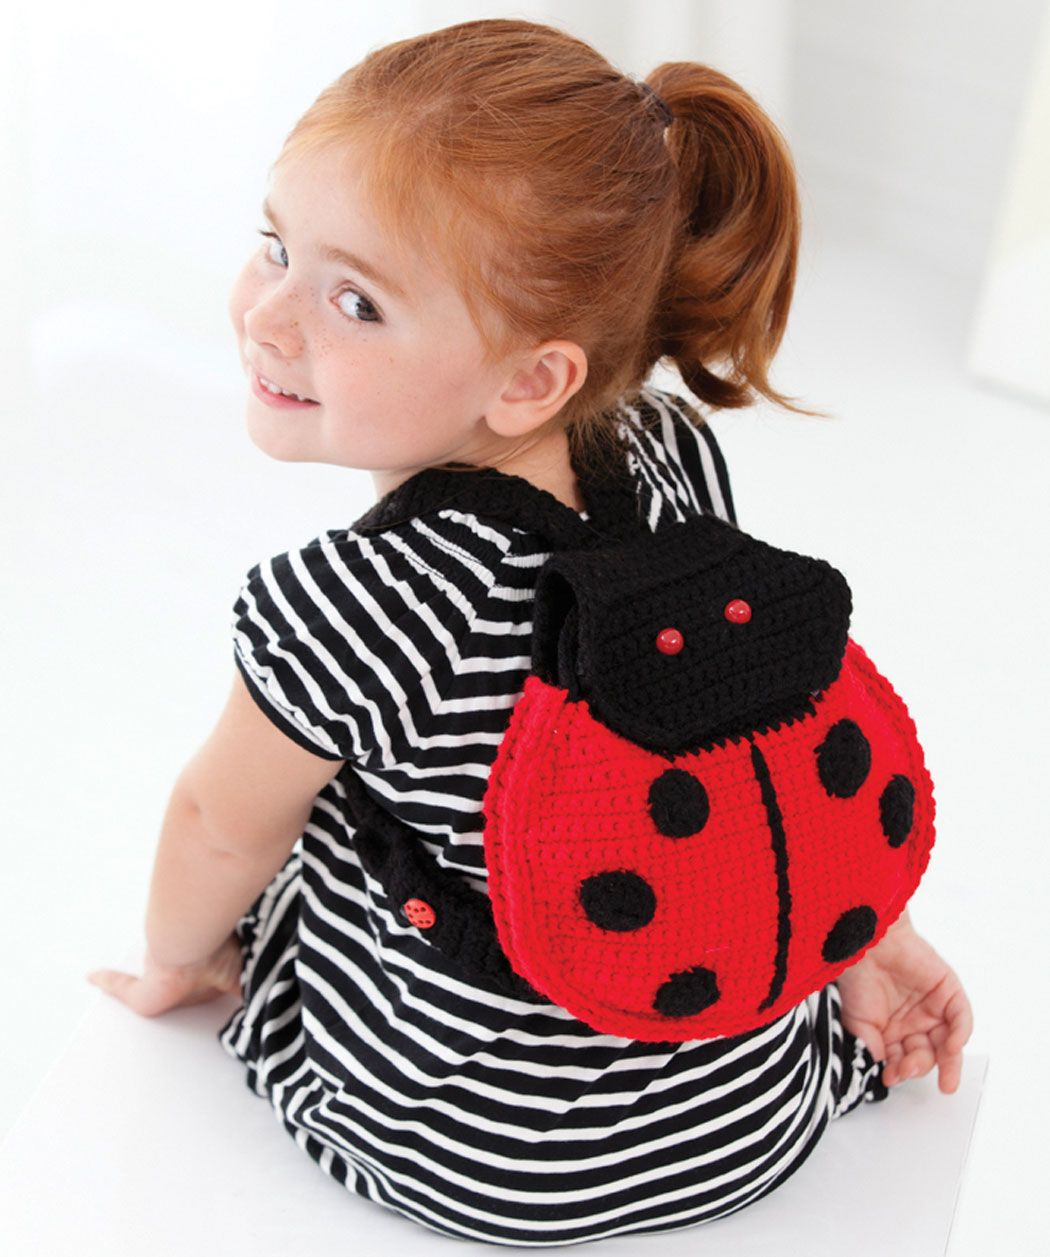 Crochet backpack bag pattern all the very best ideas lady bugs crochet backpack bag pattern all the very best ideas bankloansurffo Choice Image